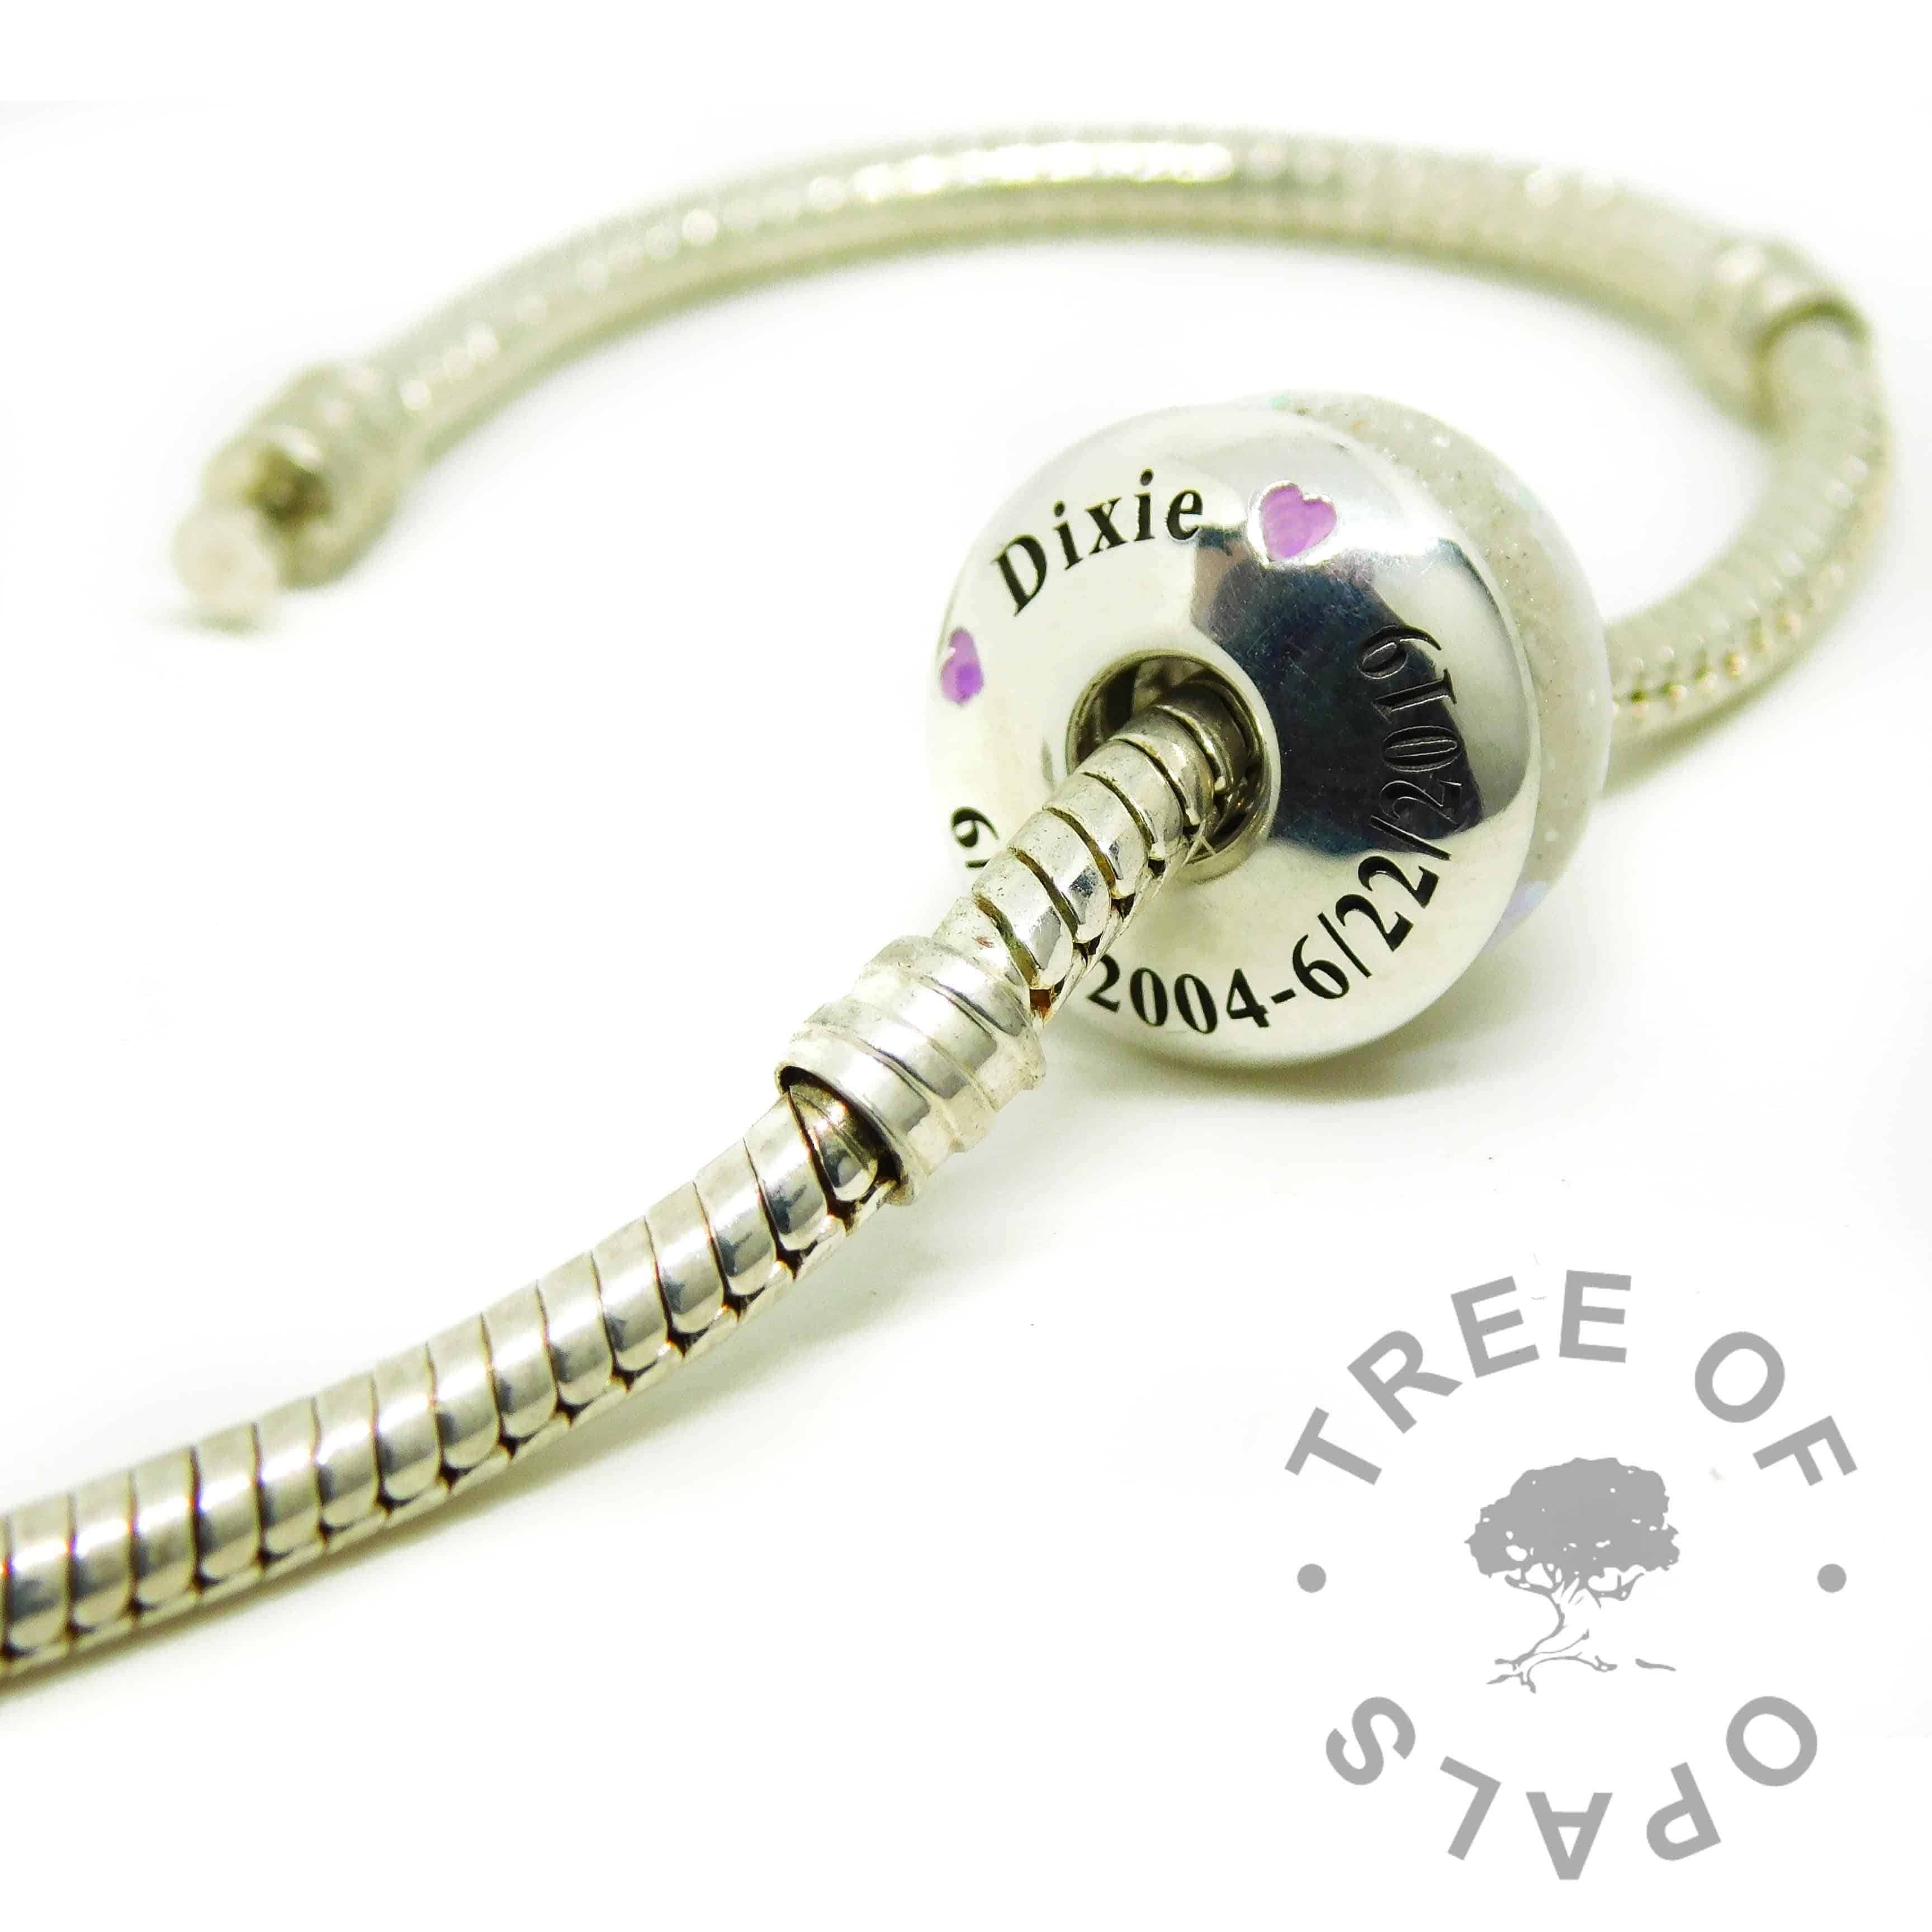 cremation ash charm unicorn resin sparkle mix, and an engraved charm washer on a Pandora bracelet style chain. ashes charms with solid silver cores